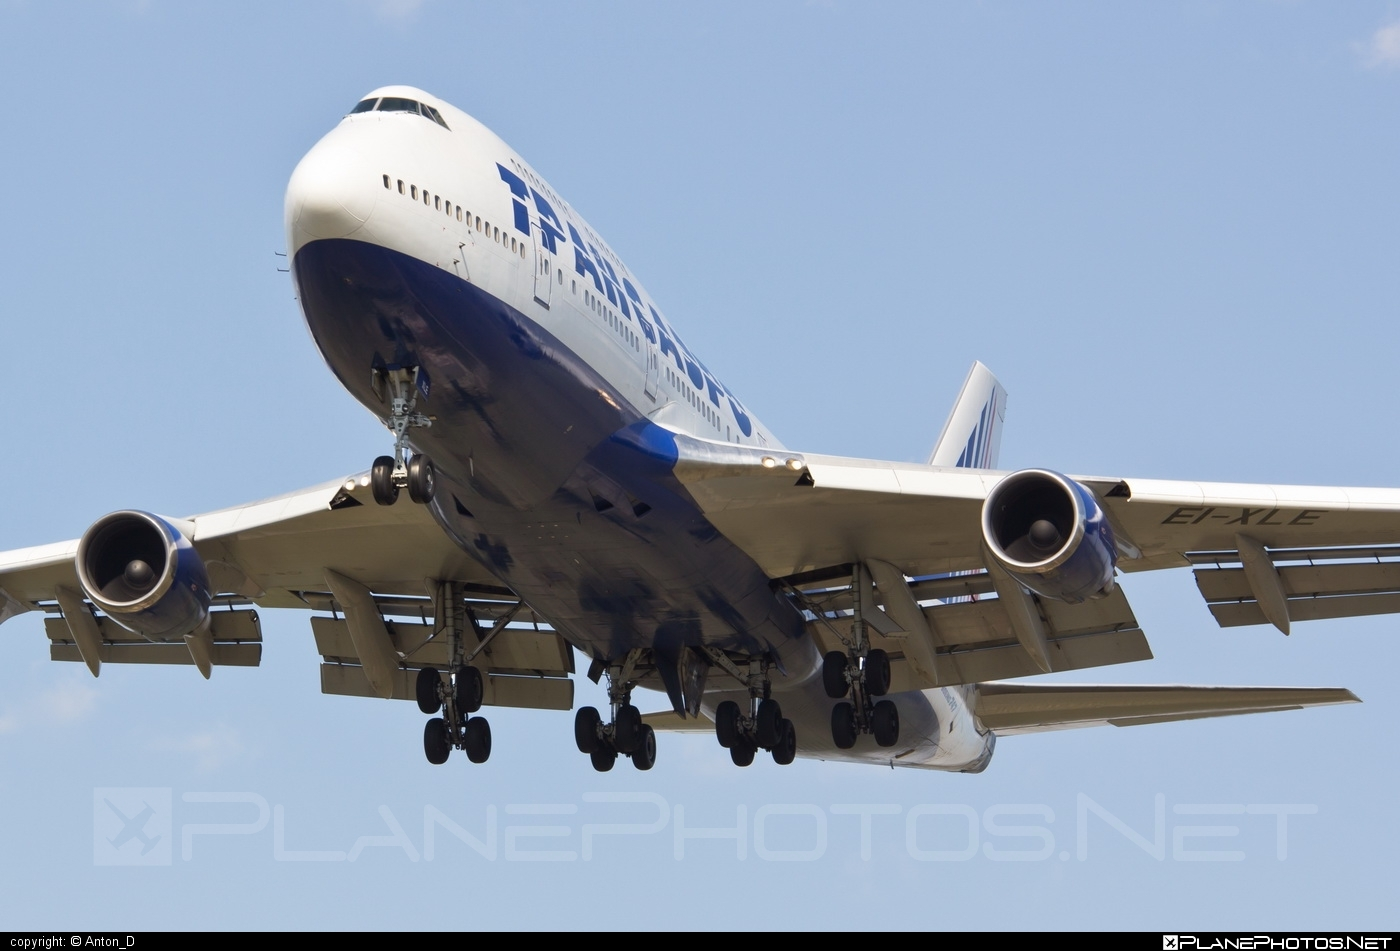 Boeing 747-400 - EI-XLE operated by Transaero Airlines #b747 #boeing #boeing747 #jumbo